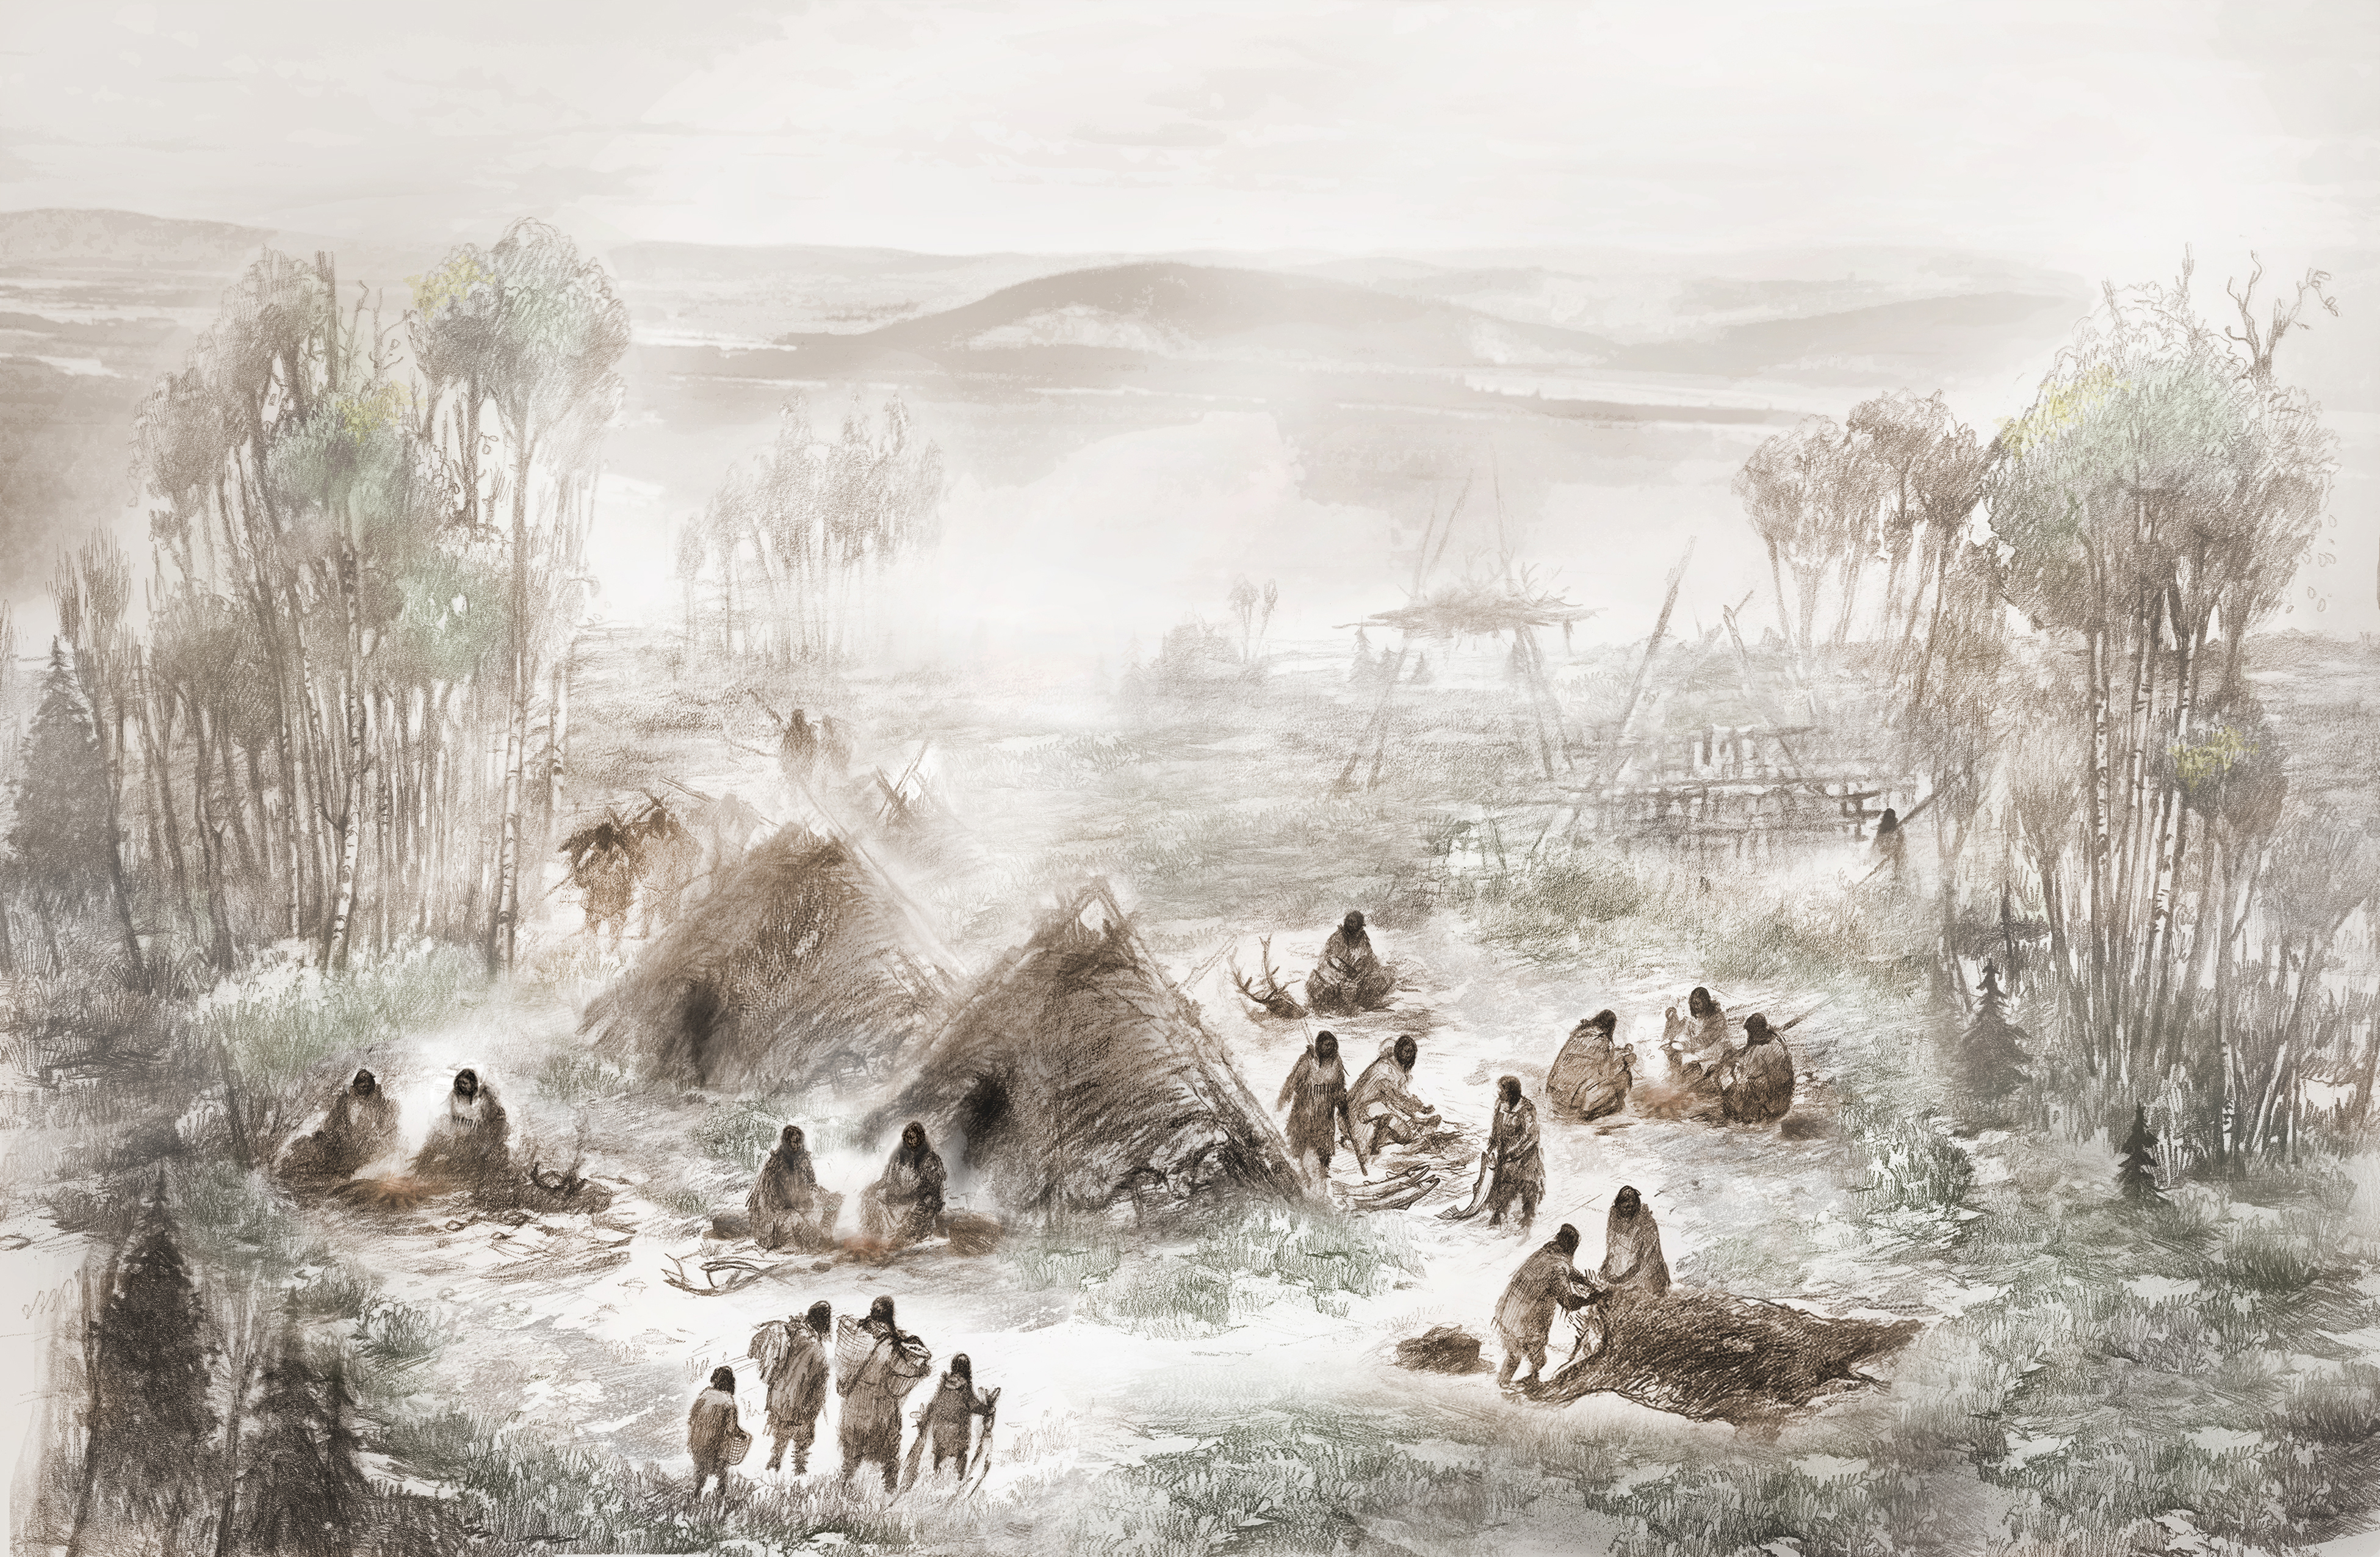 A scientific illustration of the Upward Sun River camp in what is now Interior Alaska. (Illustration by Eric S. Carlson in collaboration with Ben A. Potter)